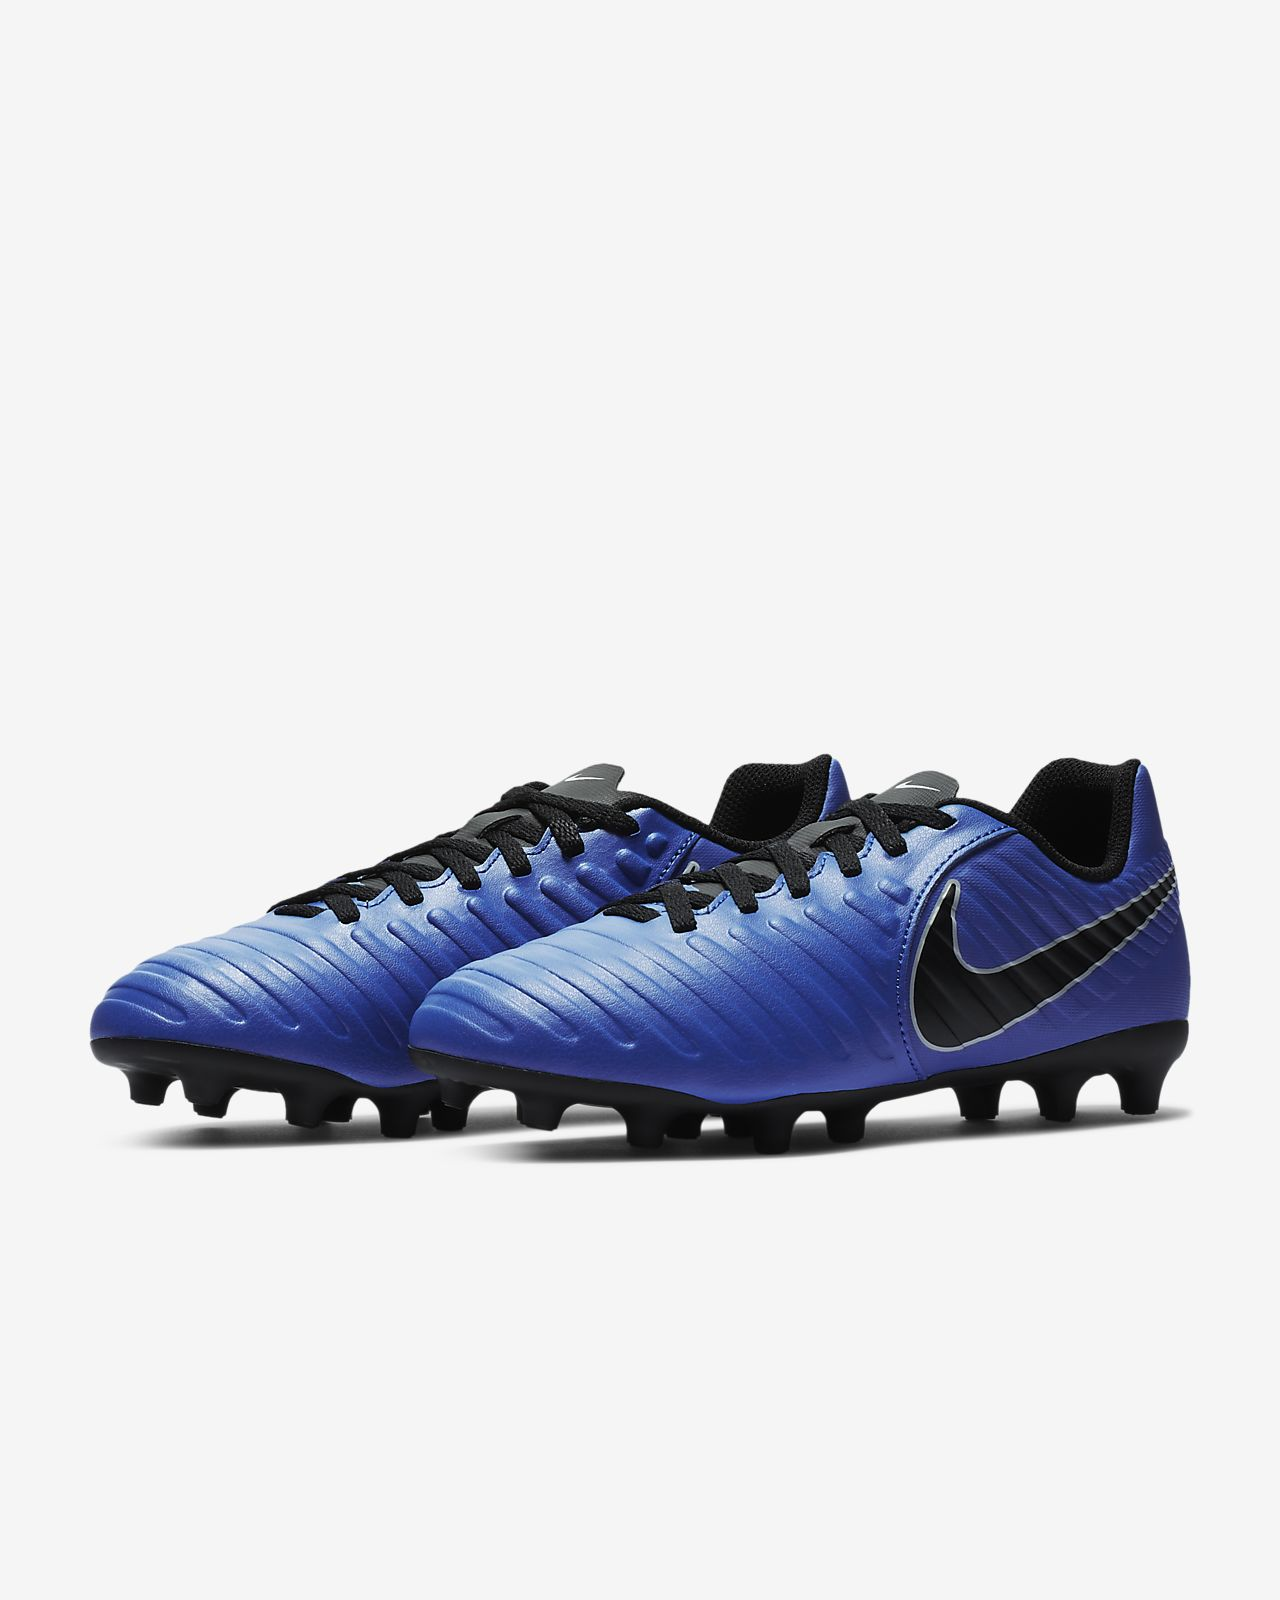 10b15a986 ... Nike Jr. Tiempo Legend VII Club Toddler Little Kids  Firm-Ground Soccer